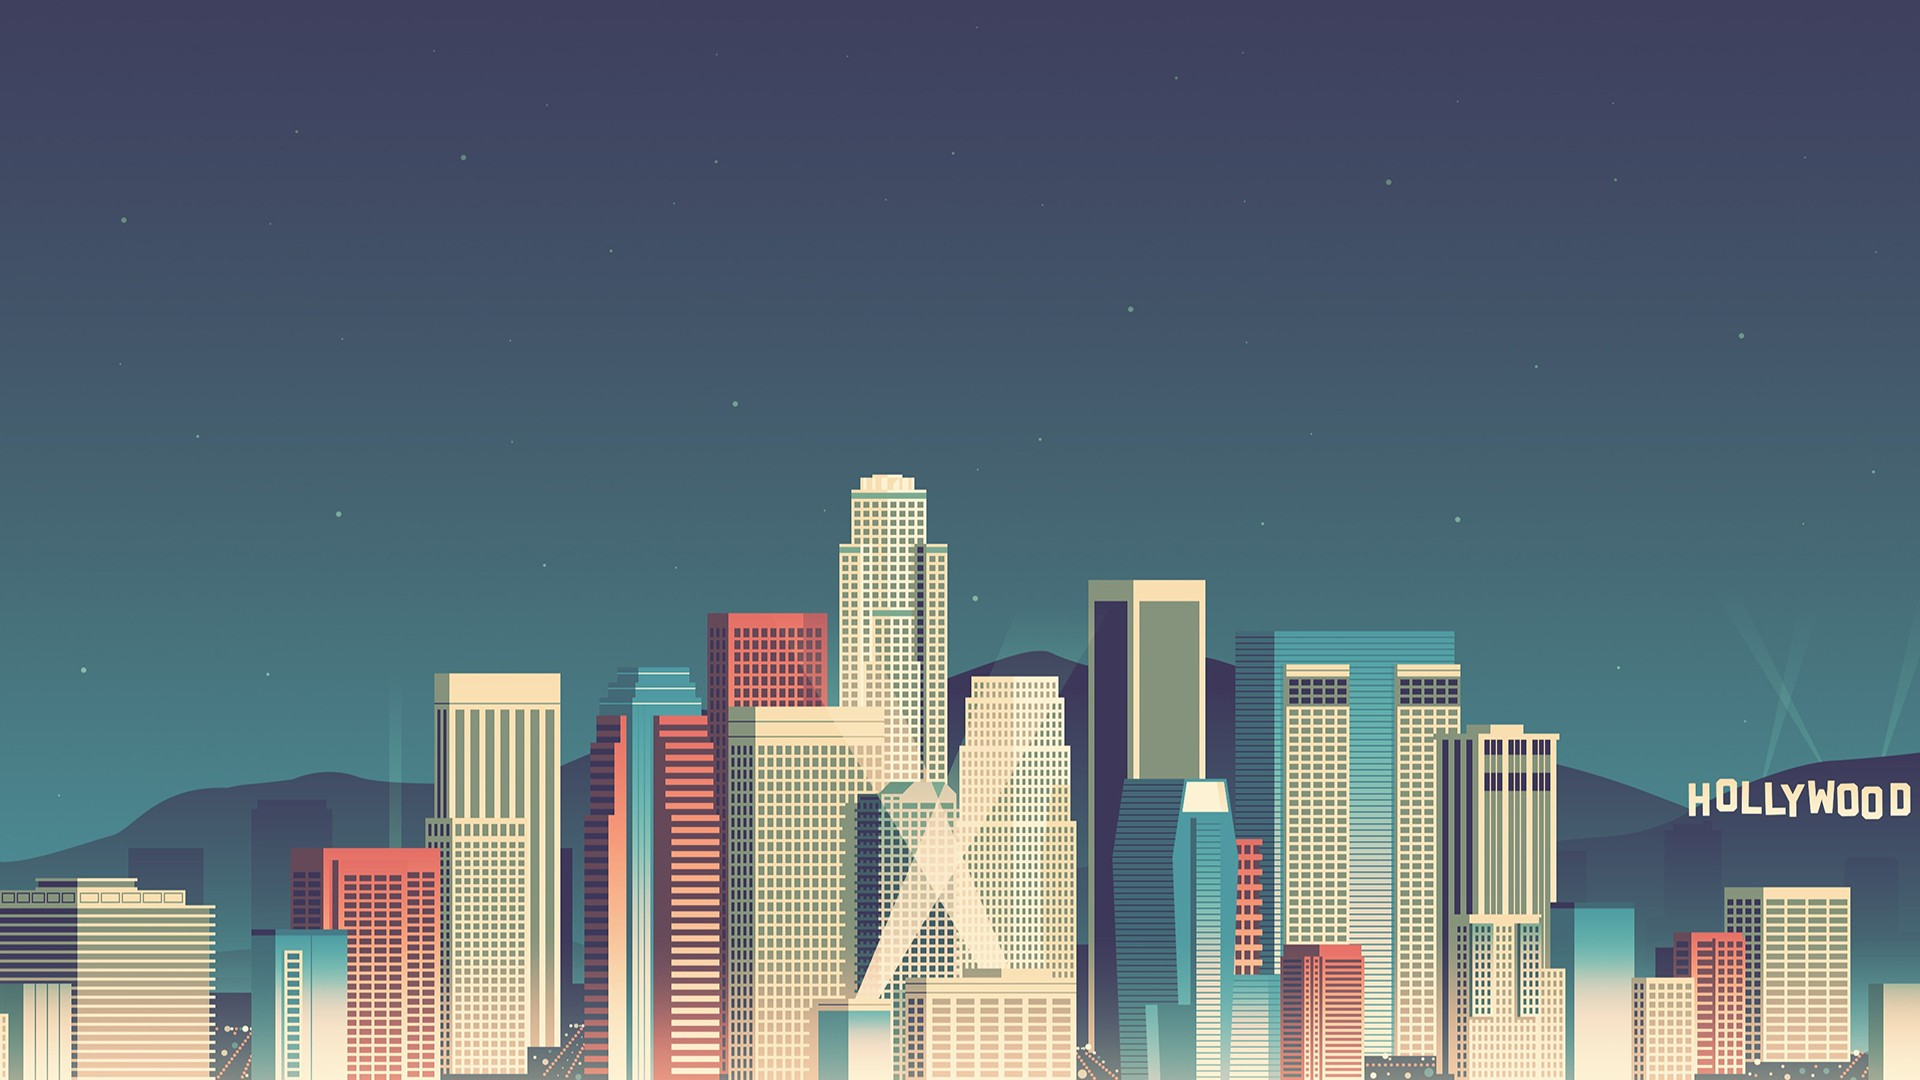 Cute Minimalistic Wallpapers Skycrapper Minimalism Hd Artist 4k Wallpapers Images